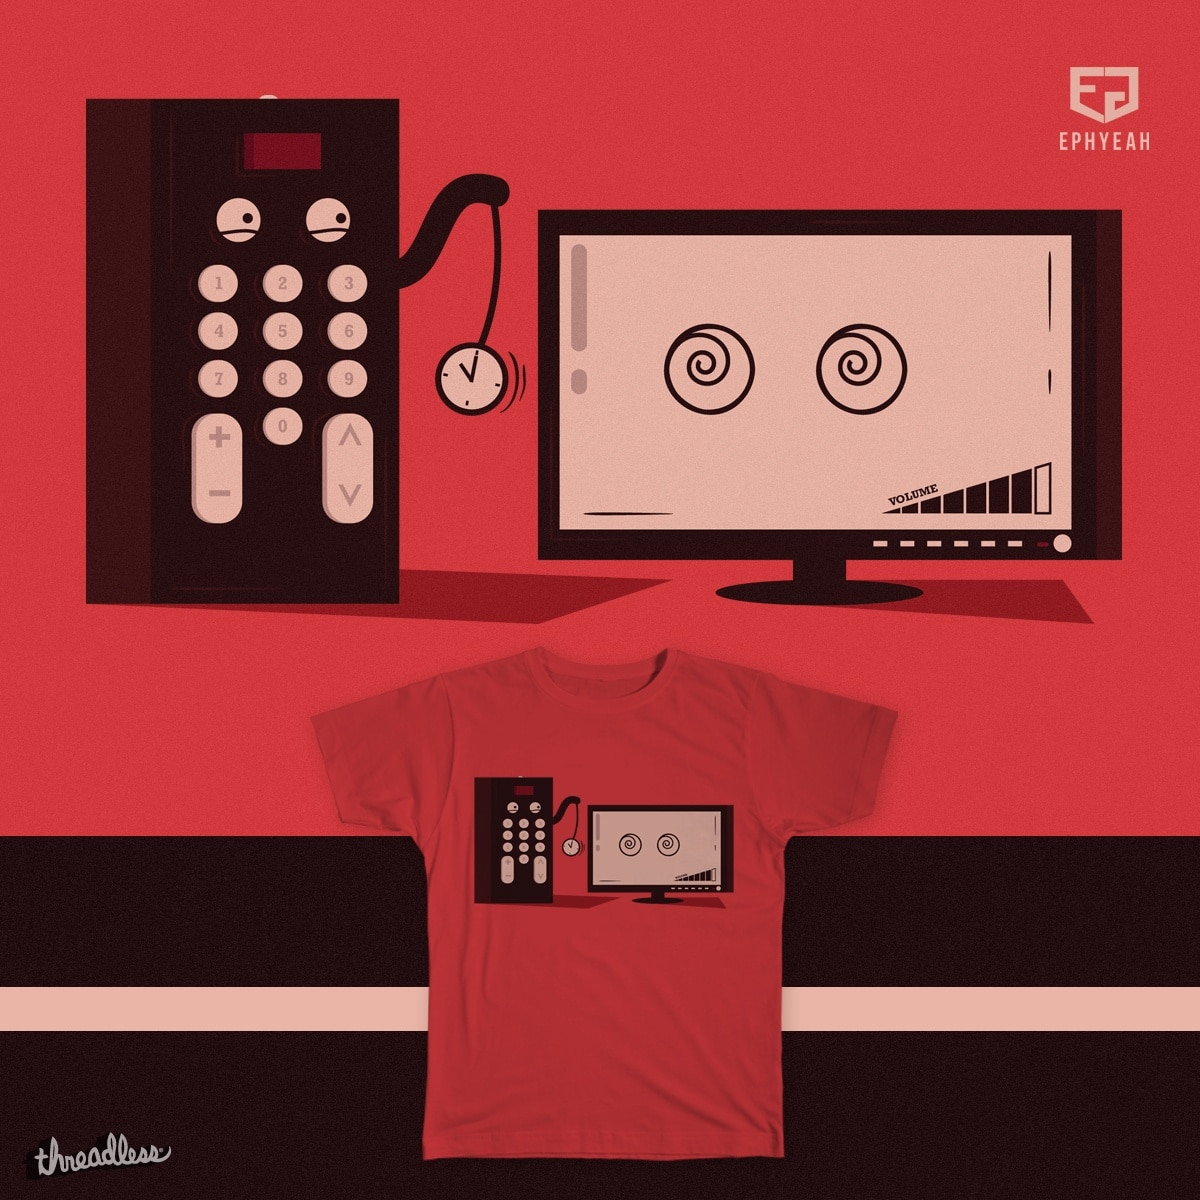 How TV Remote Works by Ephyeah on Threadless